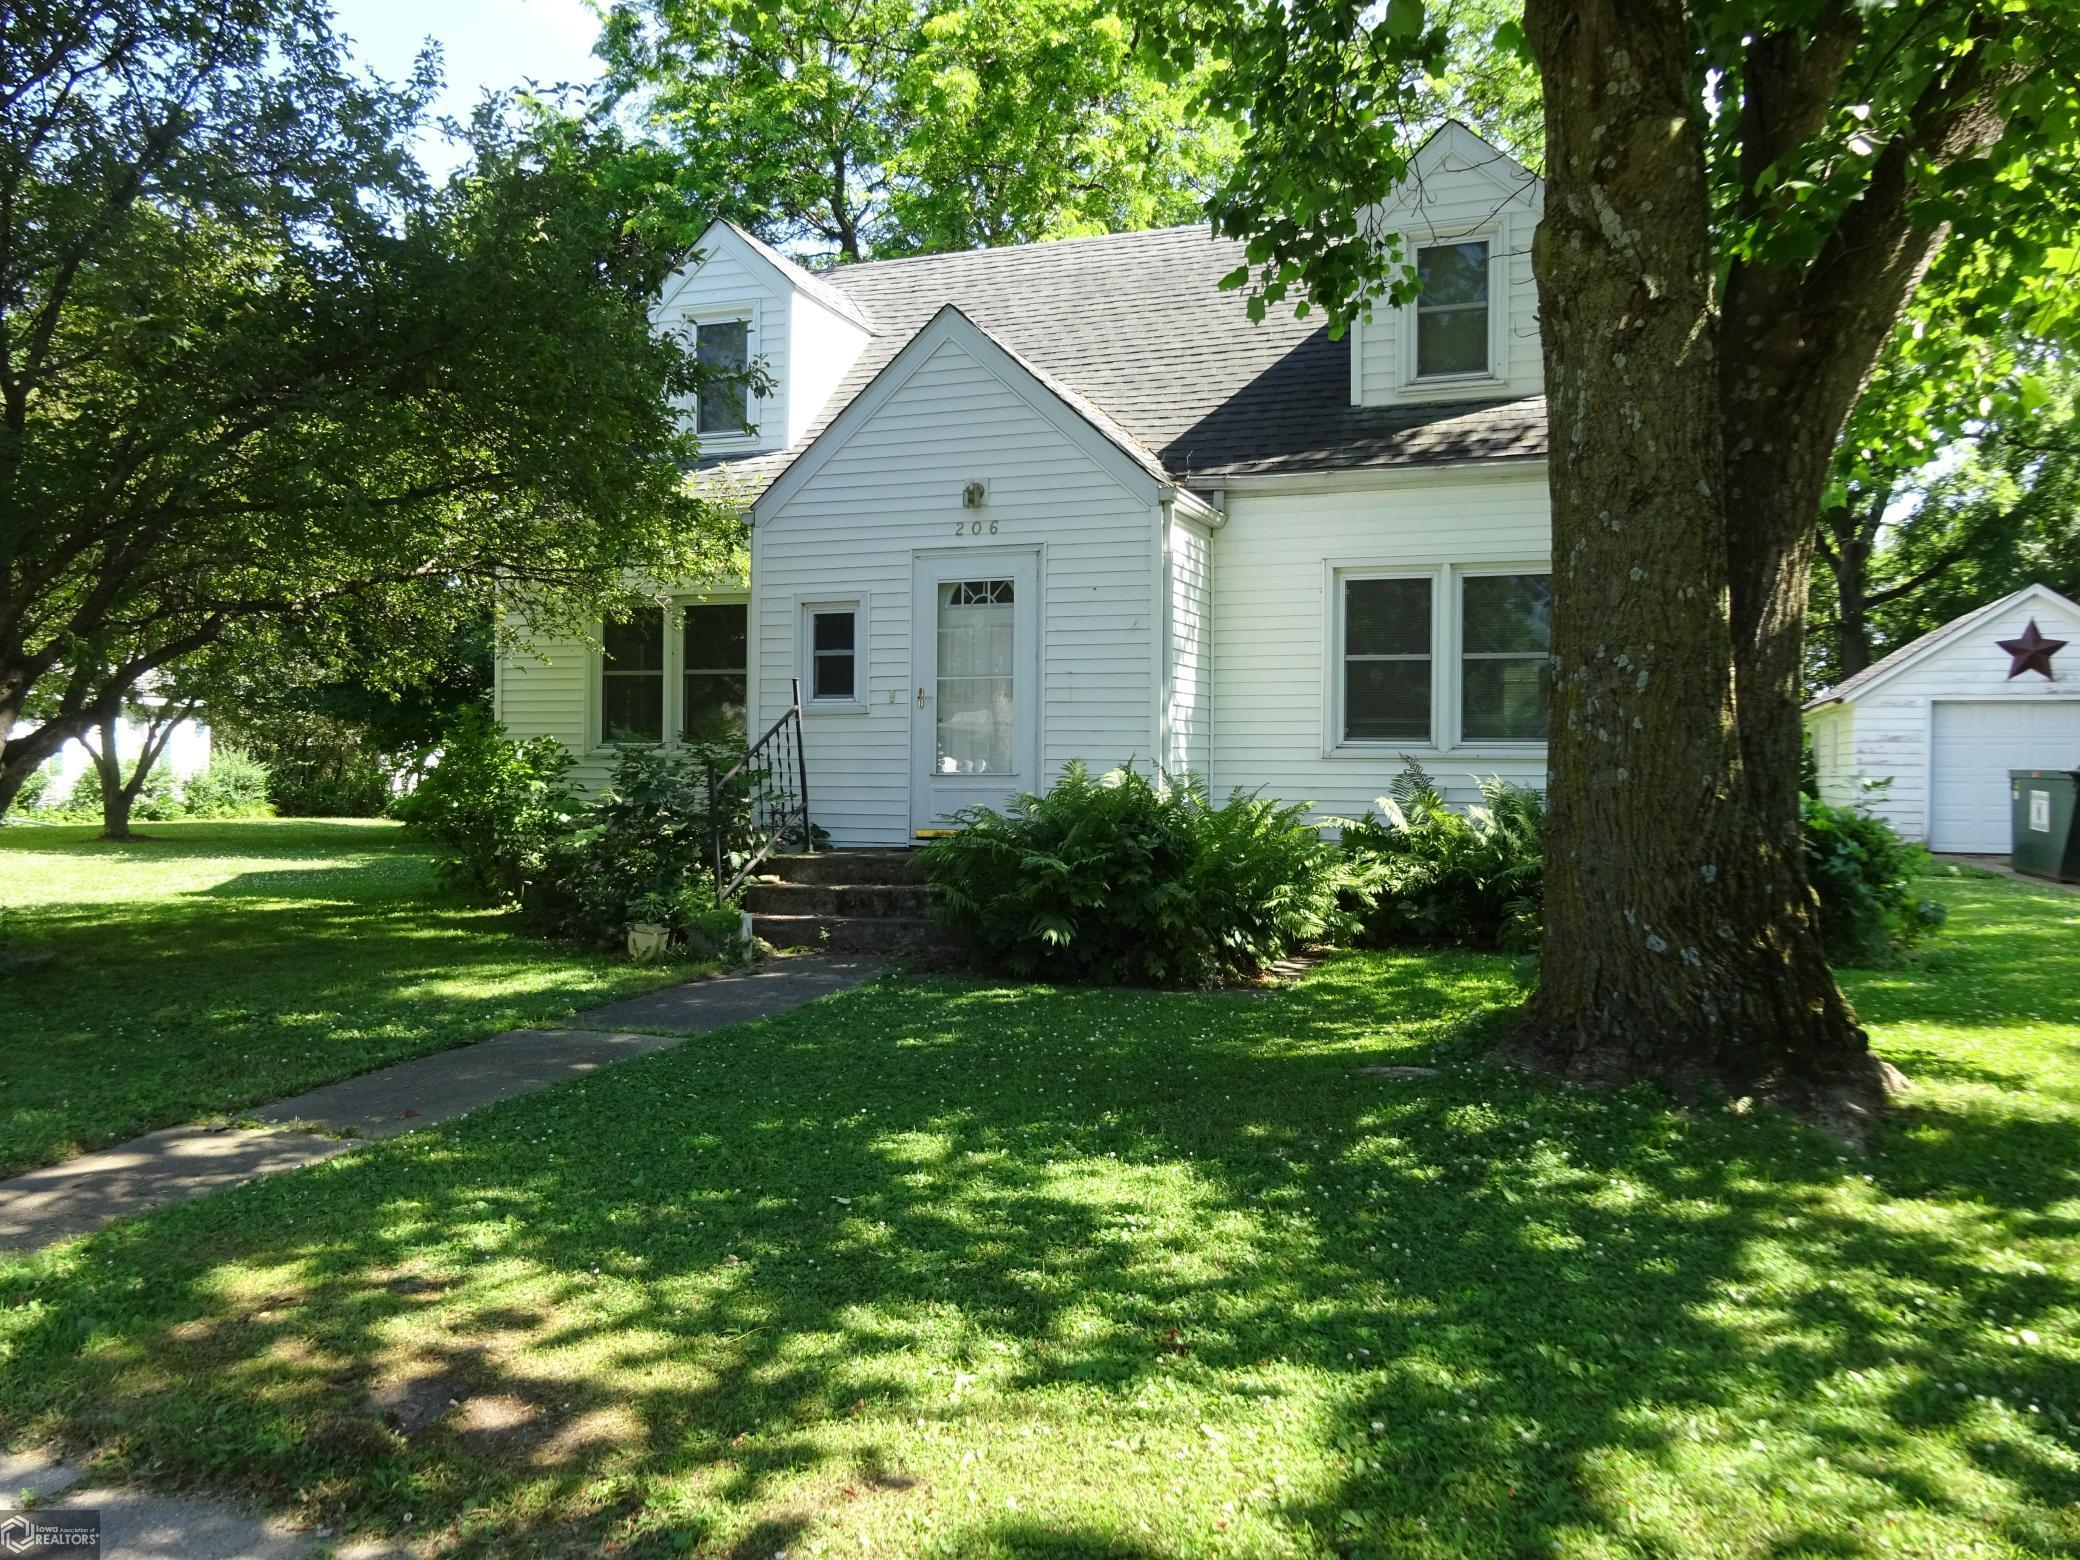 206 Main Property Photo - Steamboat Rock, IA real estate listing